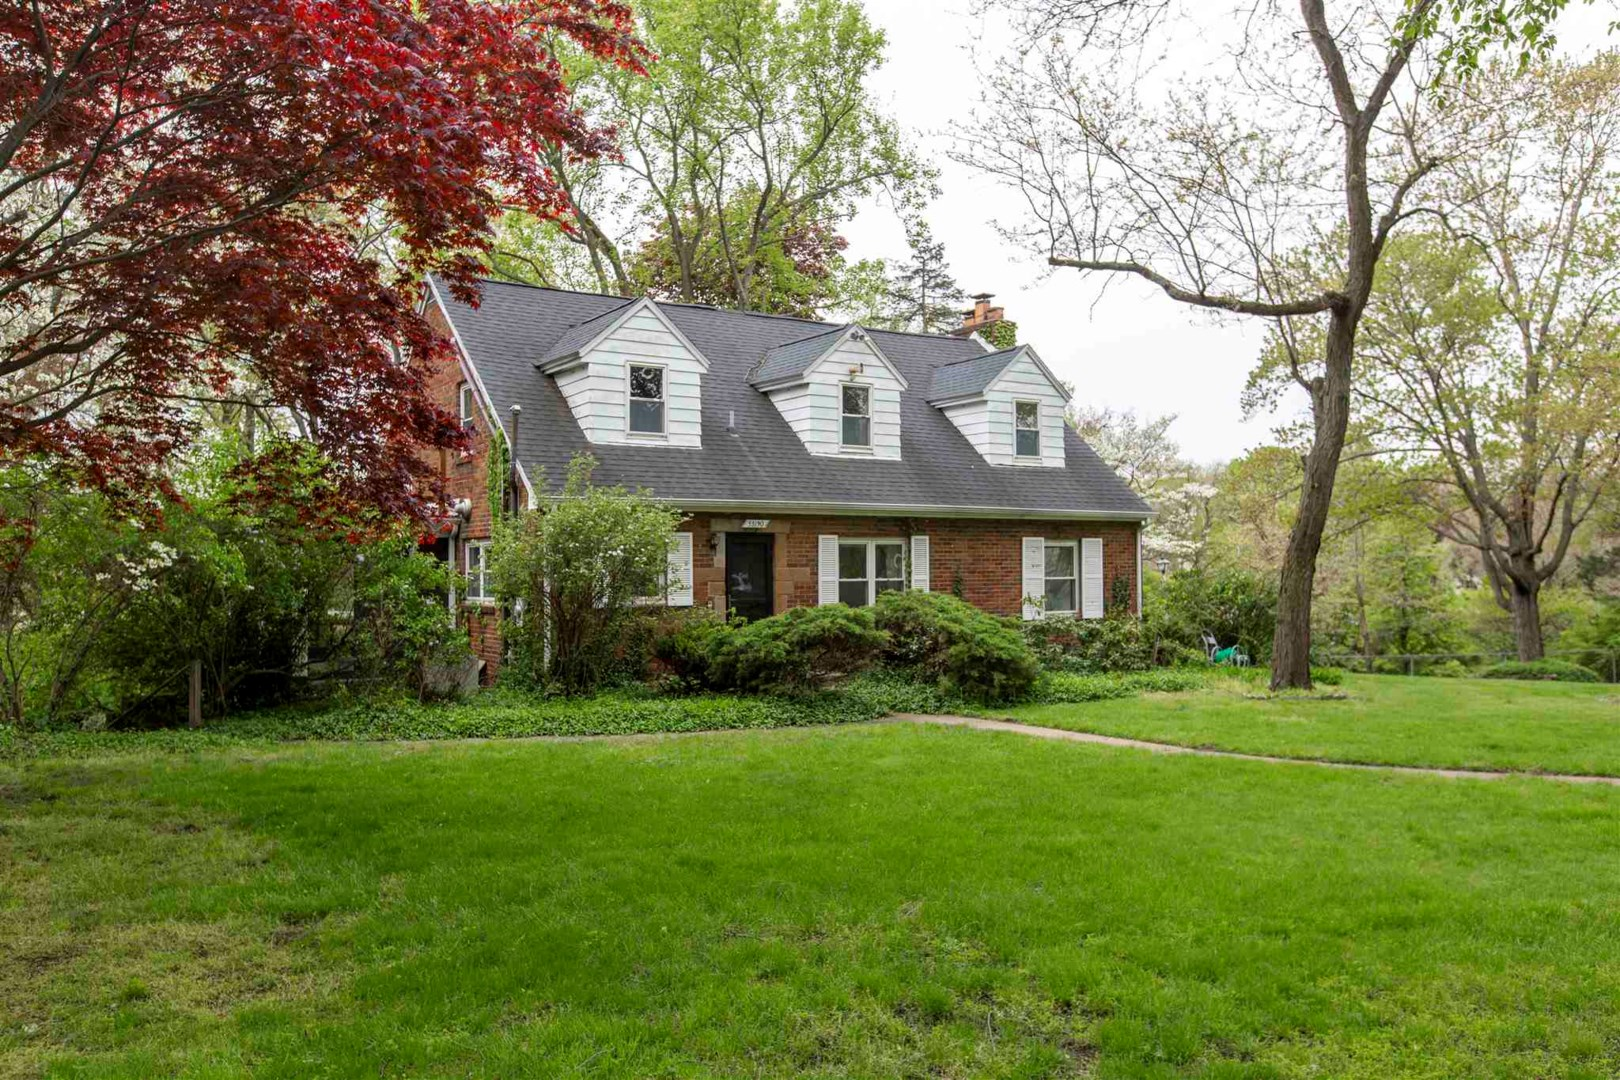 3192 SqFt House In South Bend